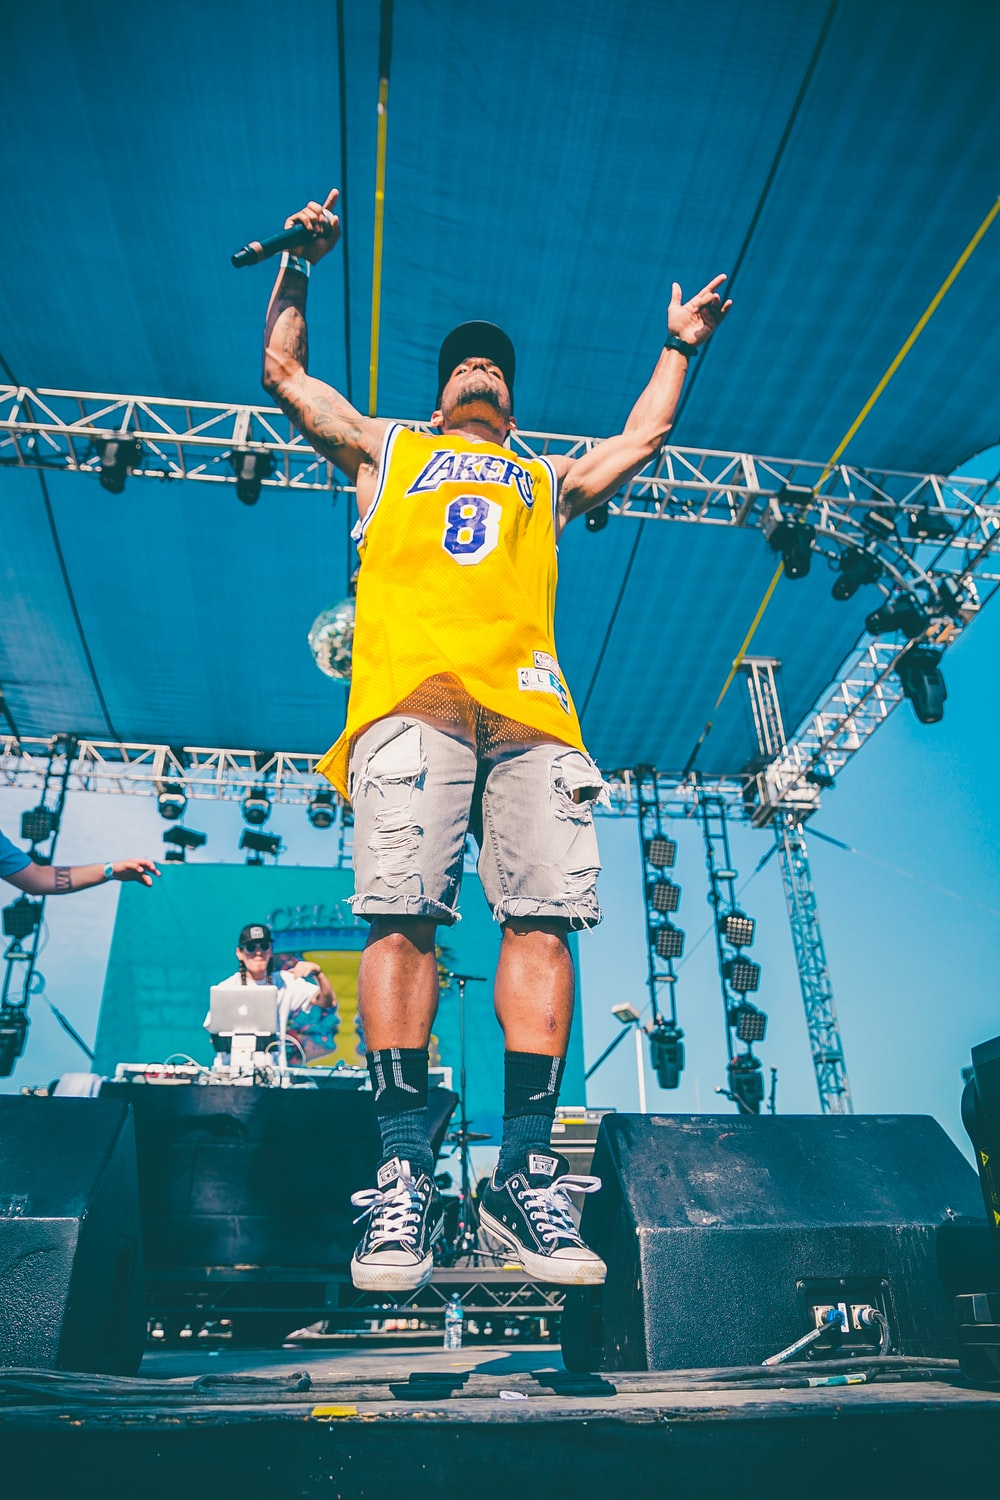 man with Lakers jersey